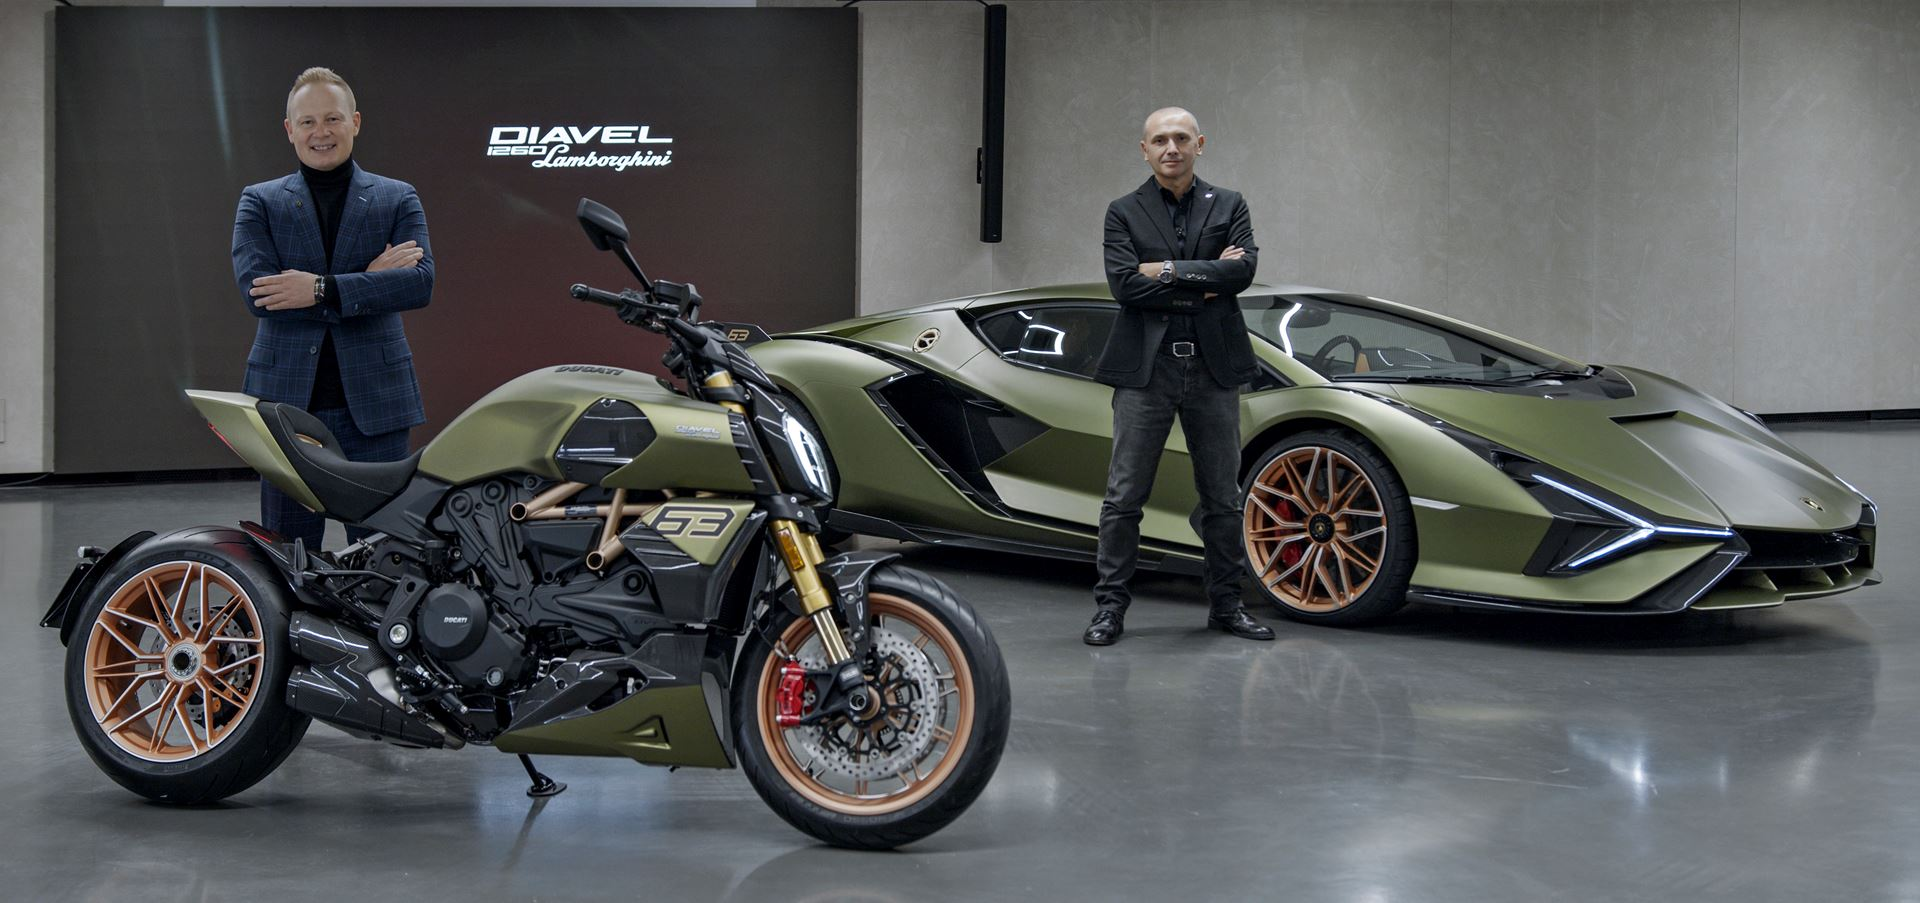 Ducati Diavel 1260 Lamborghini, inspired by the Sián FKP 37